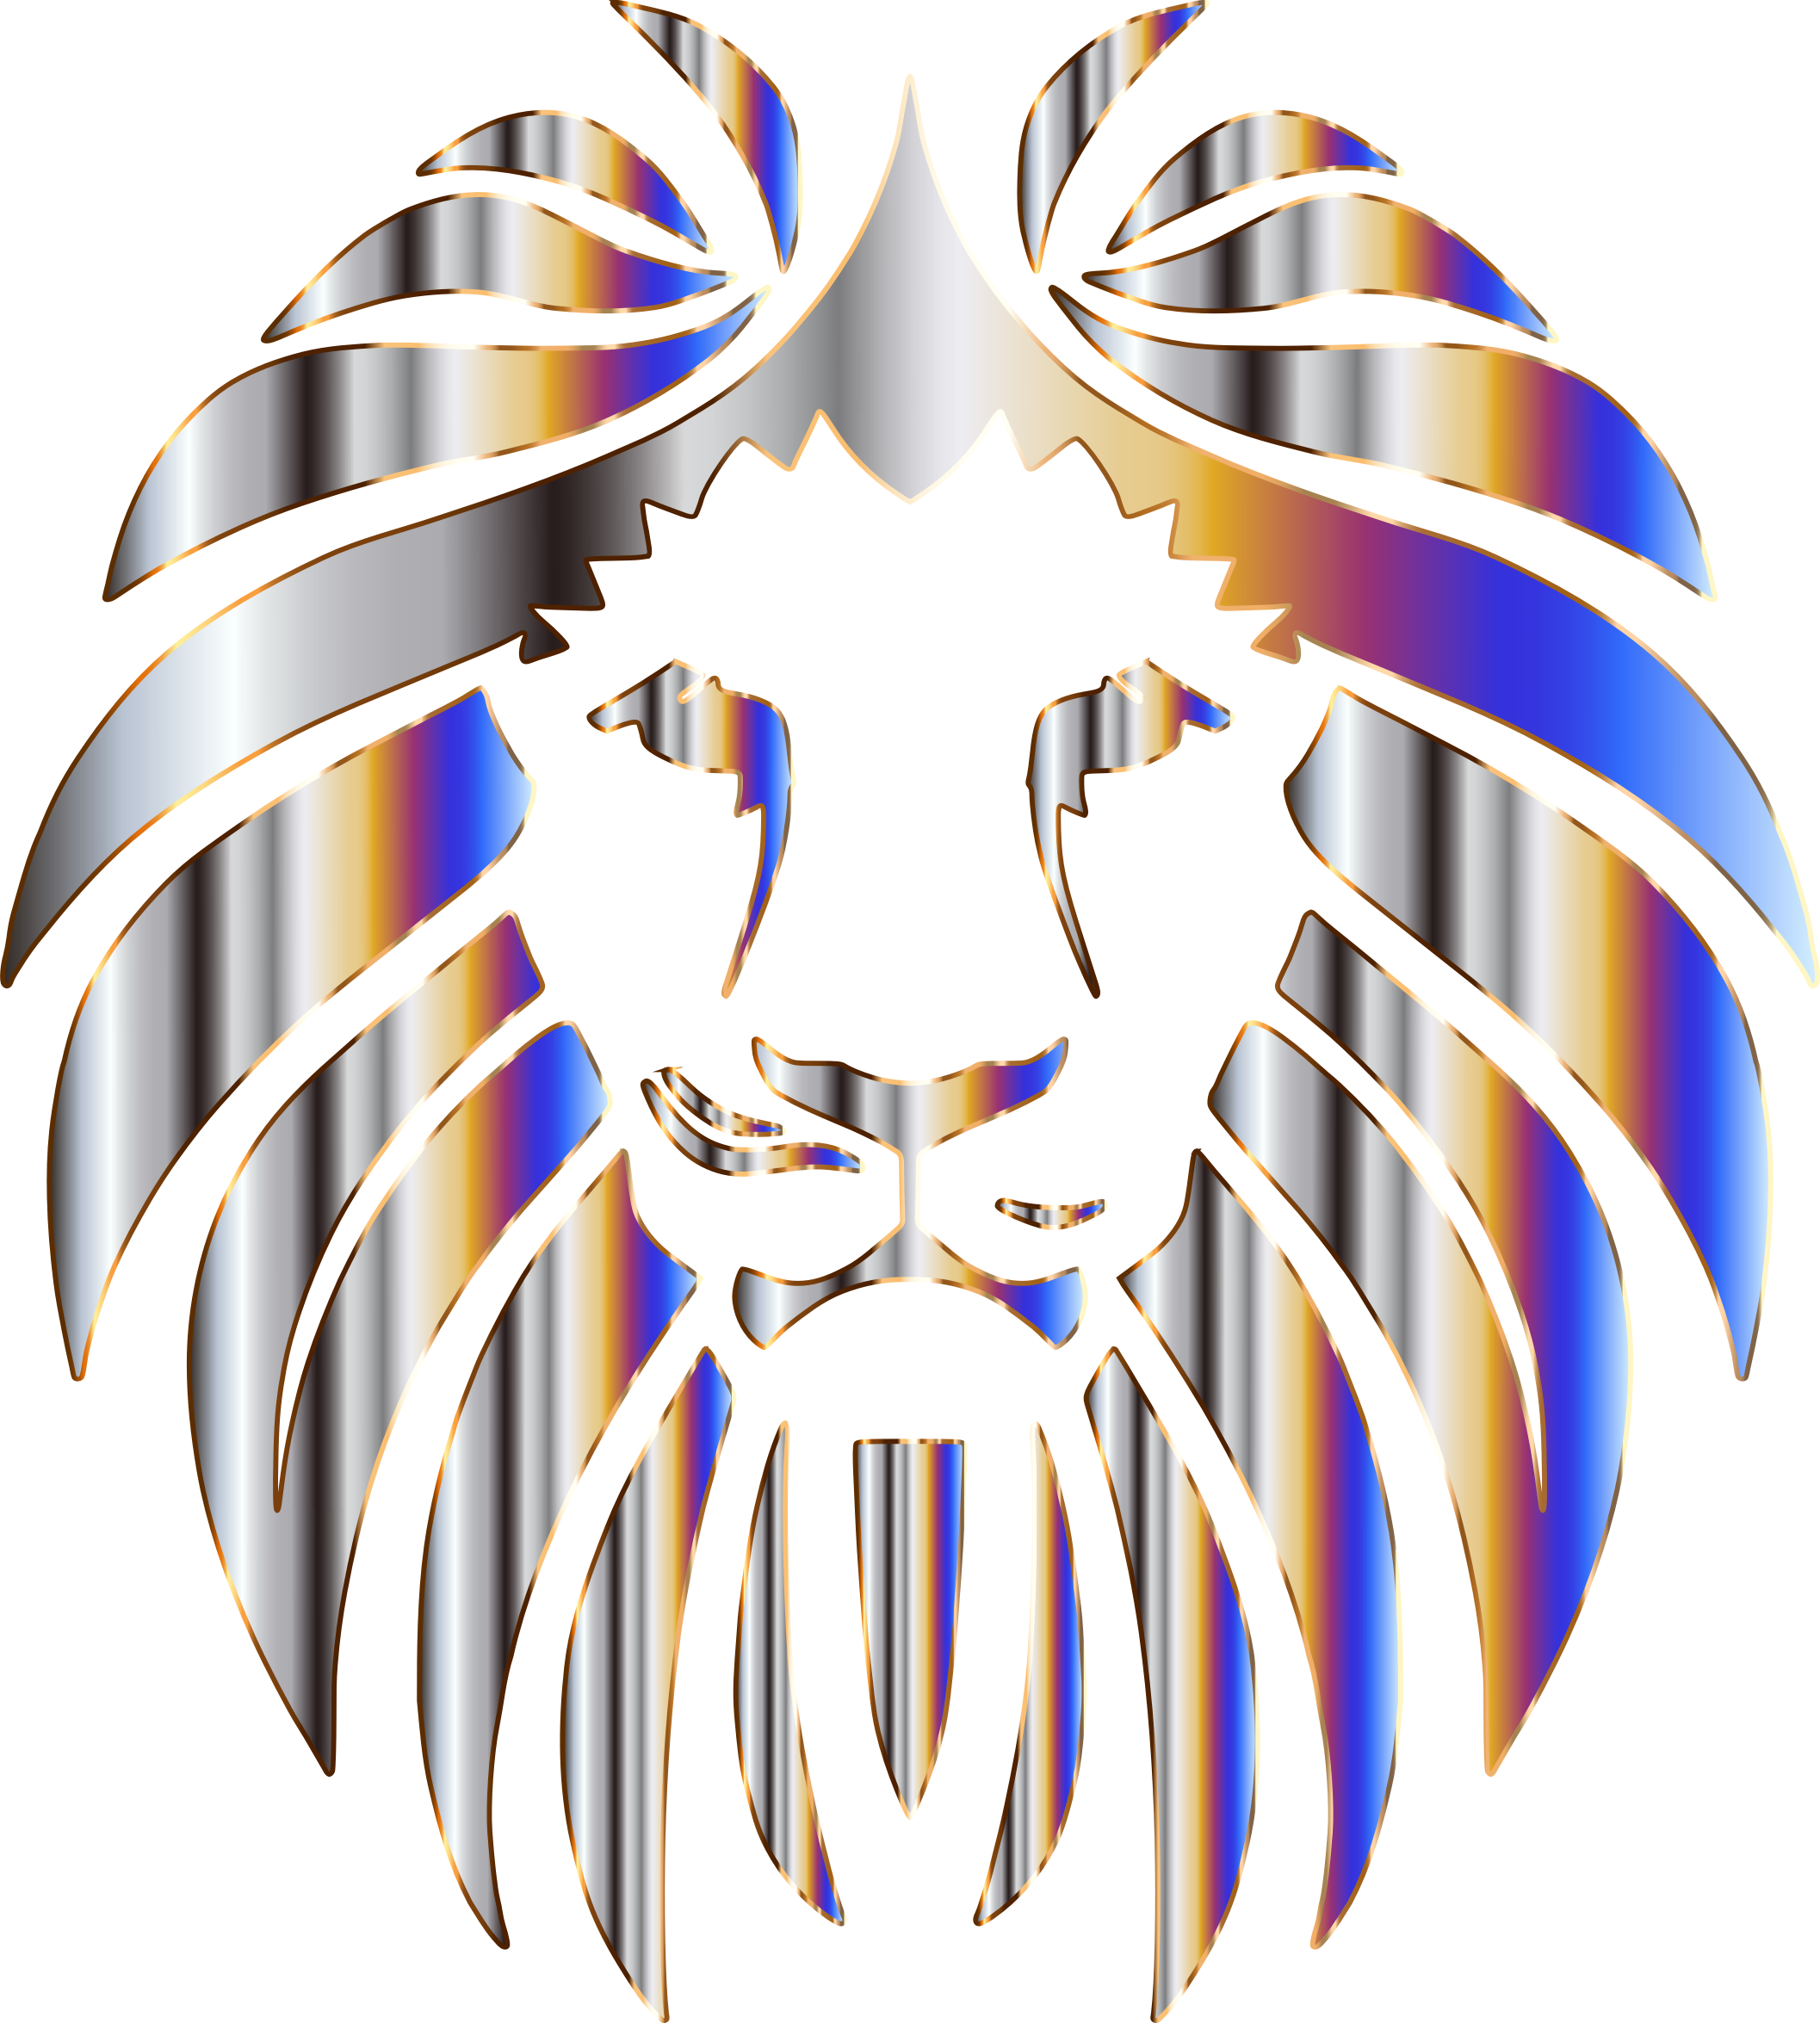 Prismatic Lion 6 No Background by GDJ